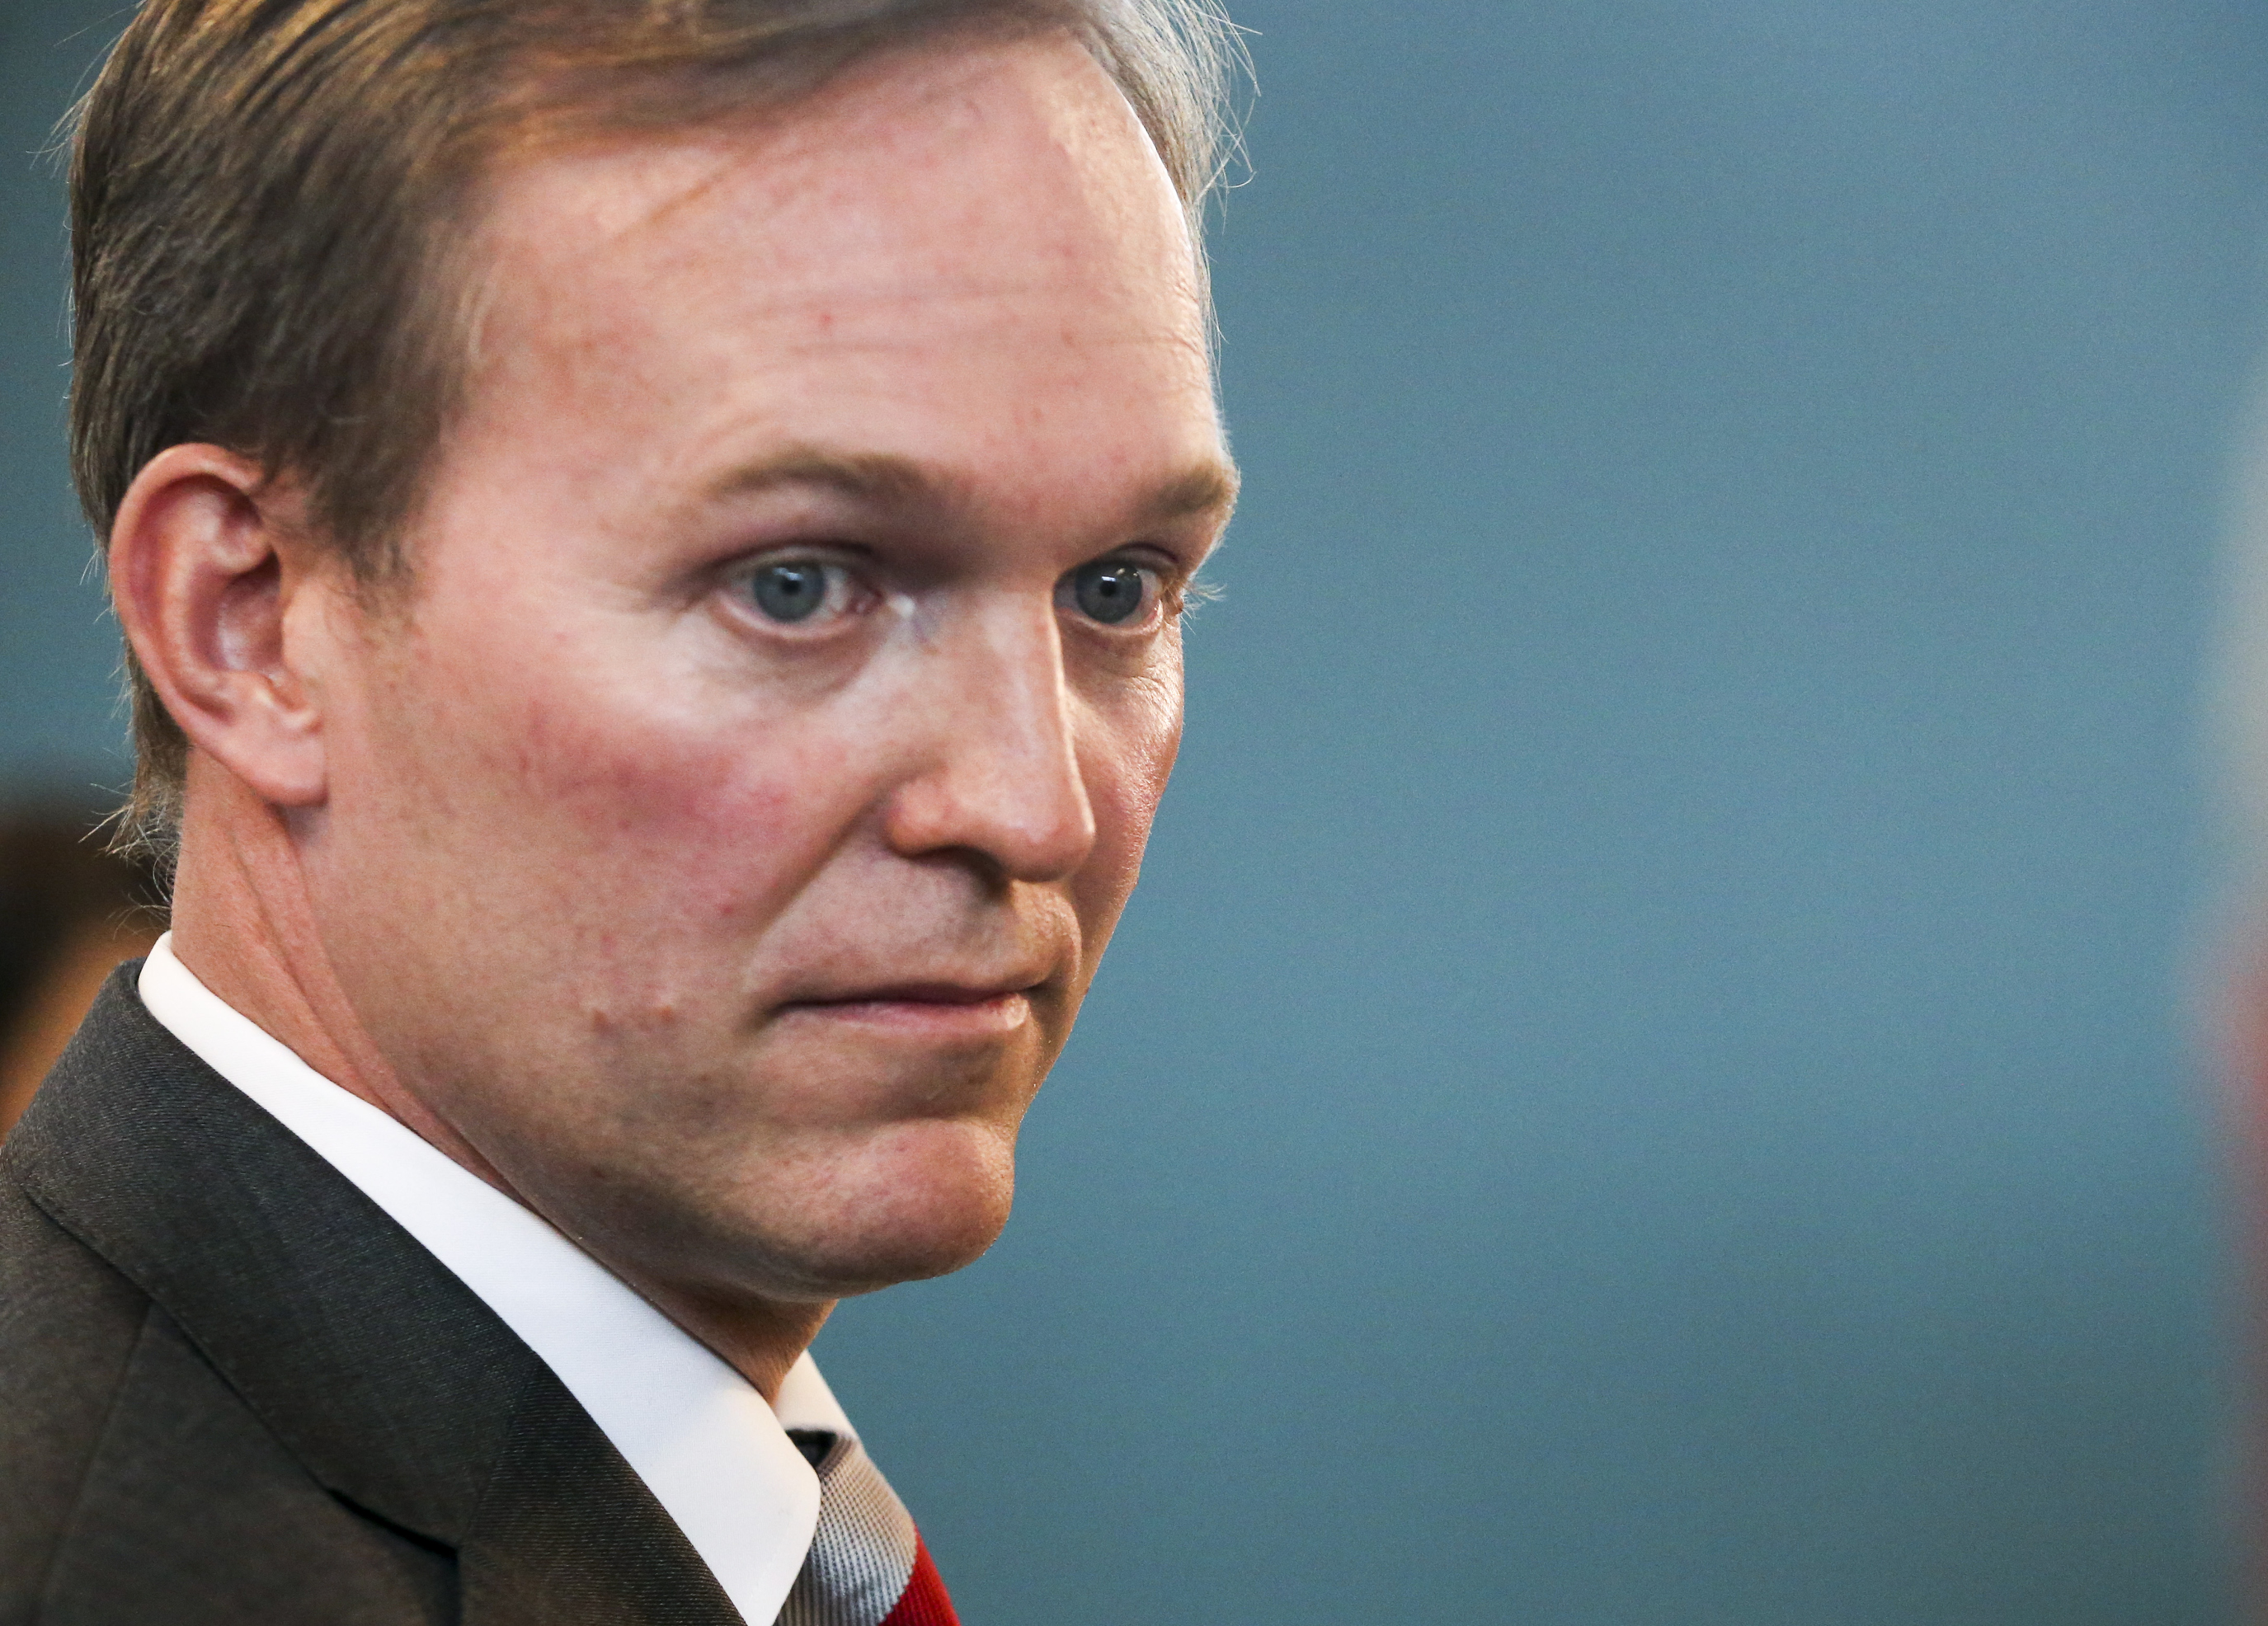 Rep. Ben McAdams listens to a reporters question about the impeachment inquiry following a town hall on aging adult and senior issues at the Midvale Senior Center in Midvale, Utah, on Friday, Oct. 4, 2019. McAdams stated he is in favor of an open inquiry but wouldn't support impeachment at the moment.